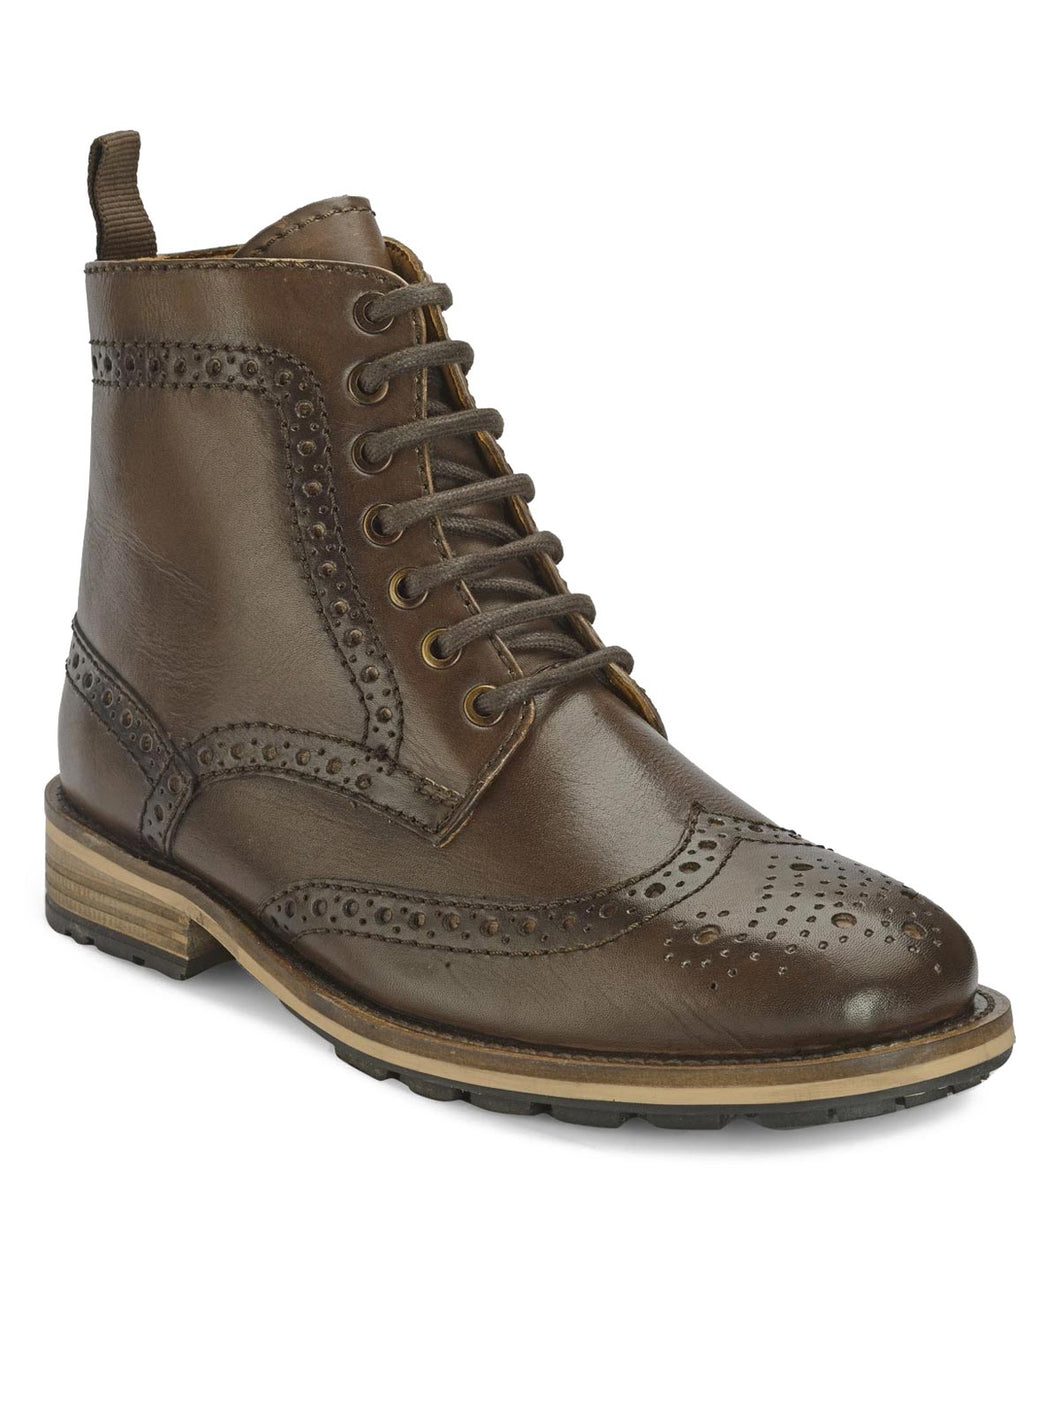 Teakwood Genuine Leather Mens Boots